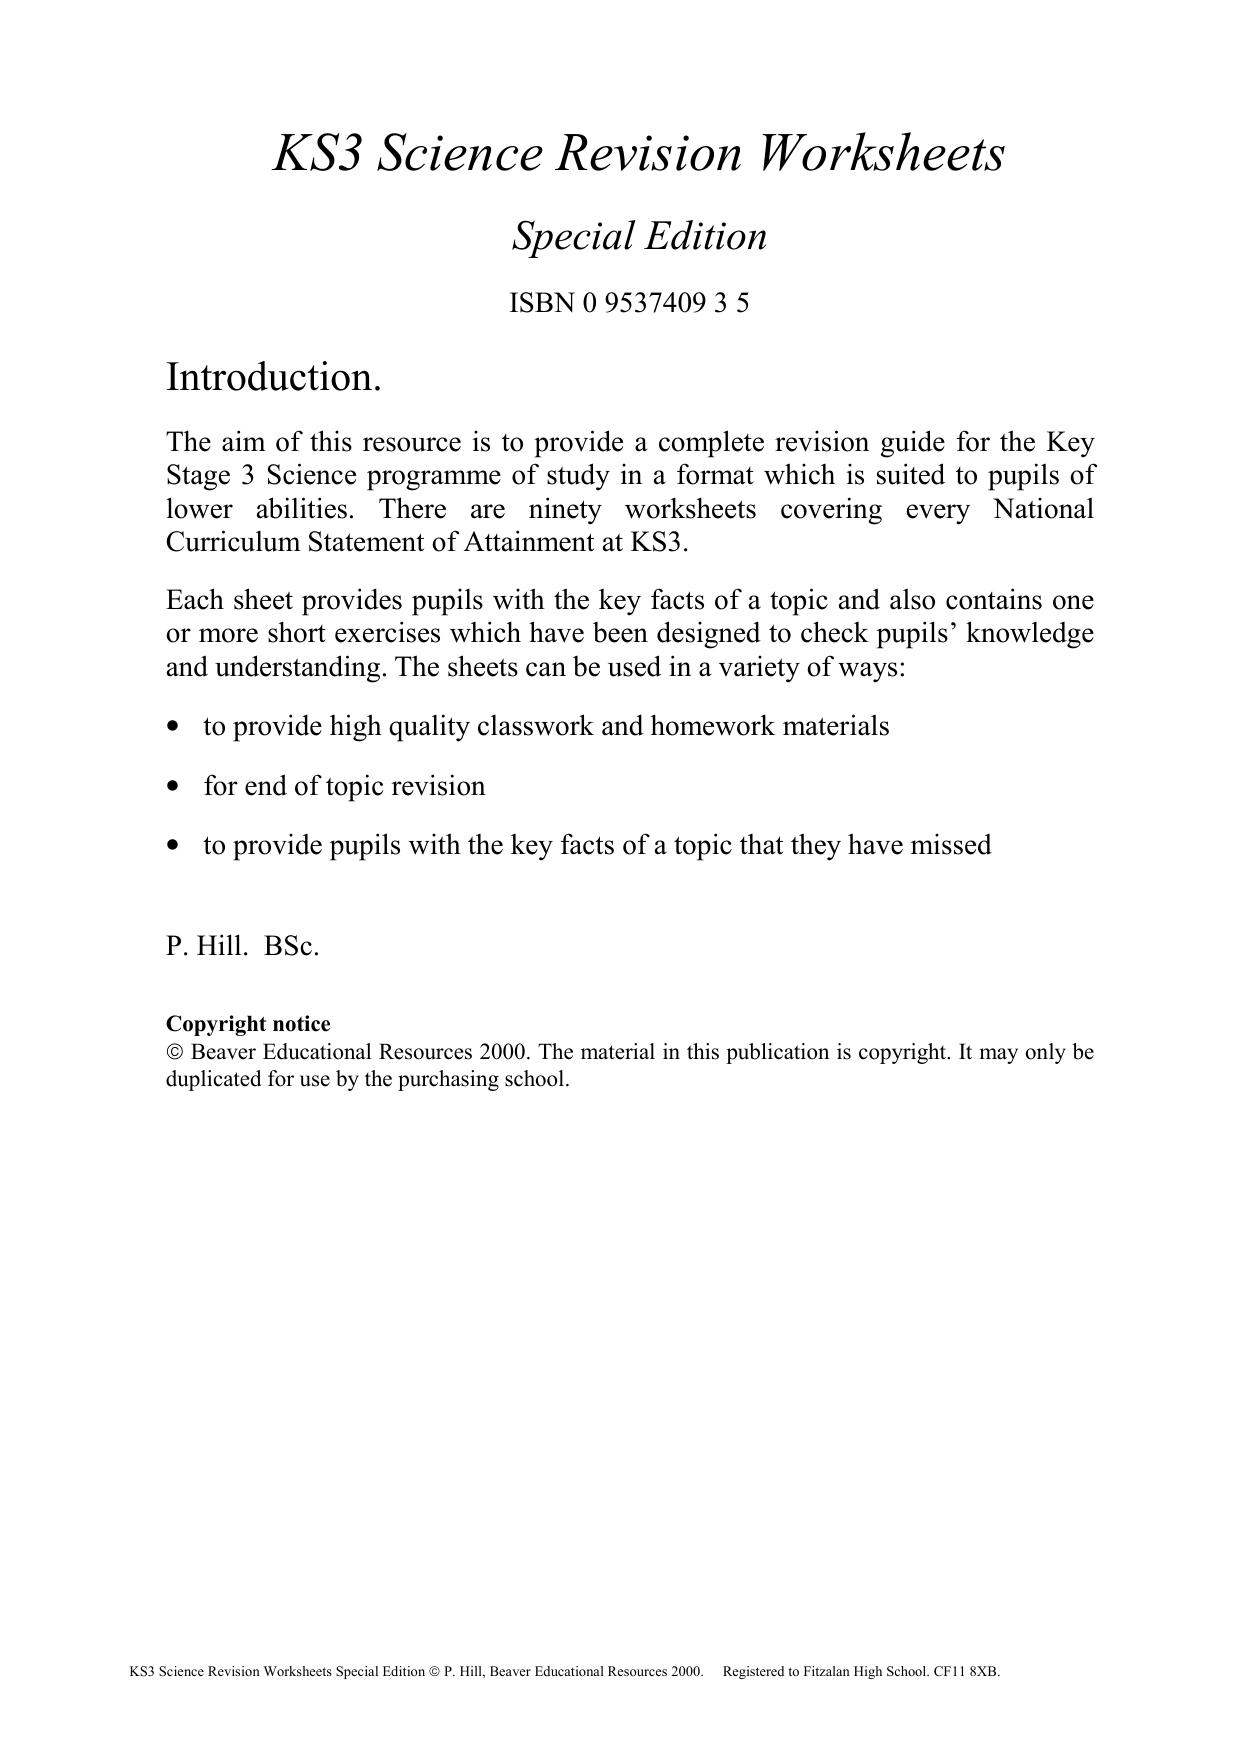 Ks3 Summary Revision Worksheets2Jnbiuu Pertaining To Science Worksheets Special Education